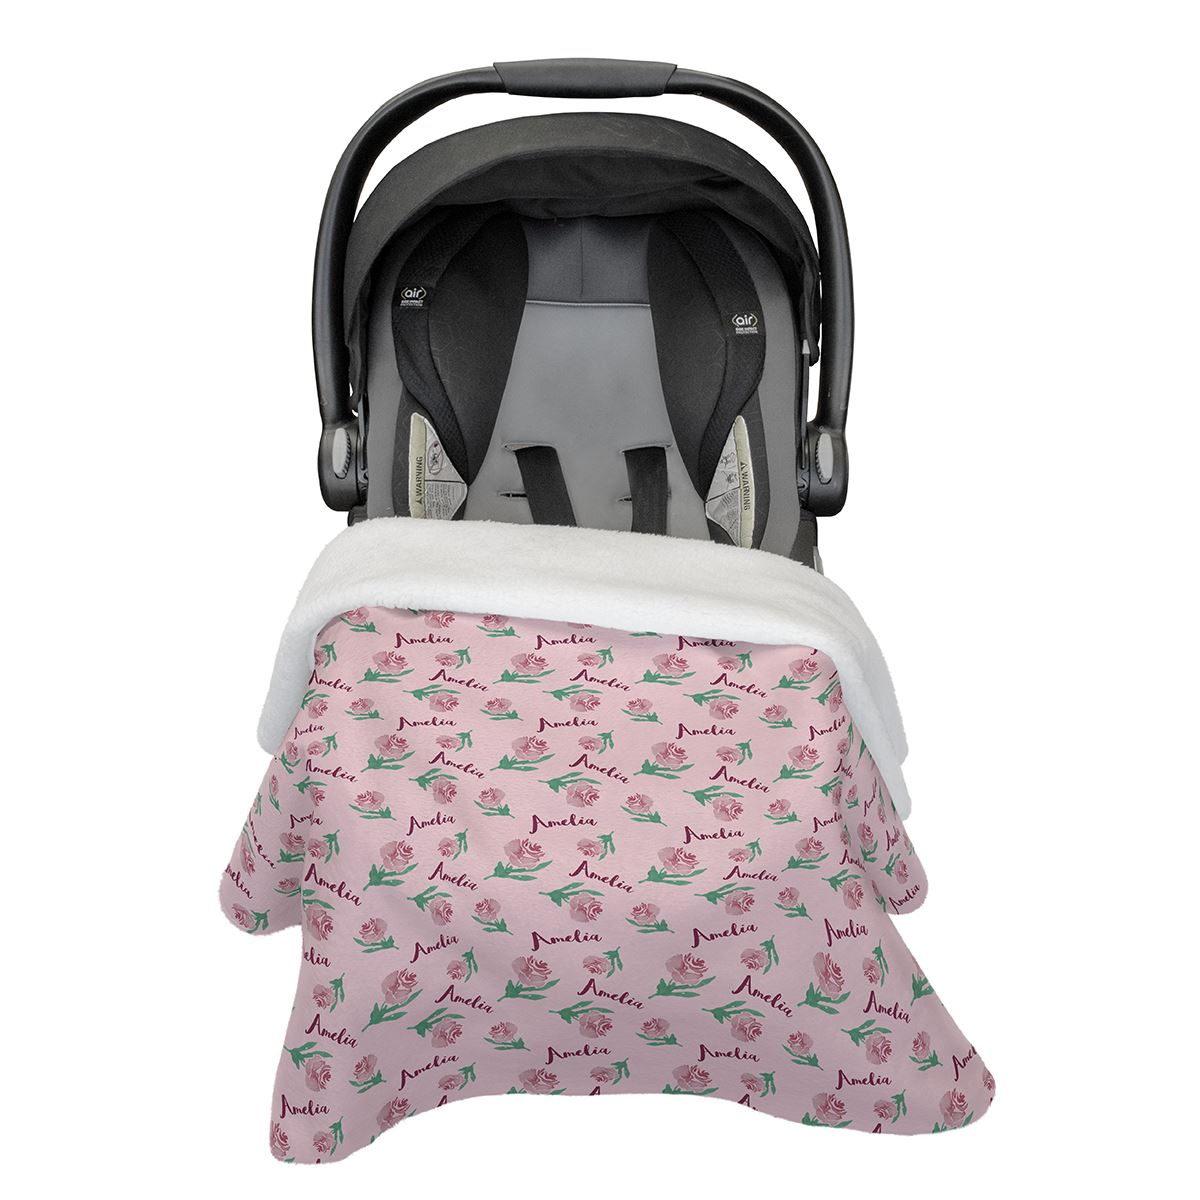 Amelia's Antique Rose | Car Seat Blanket